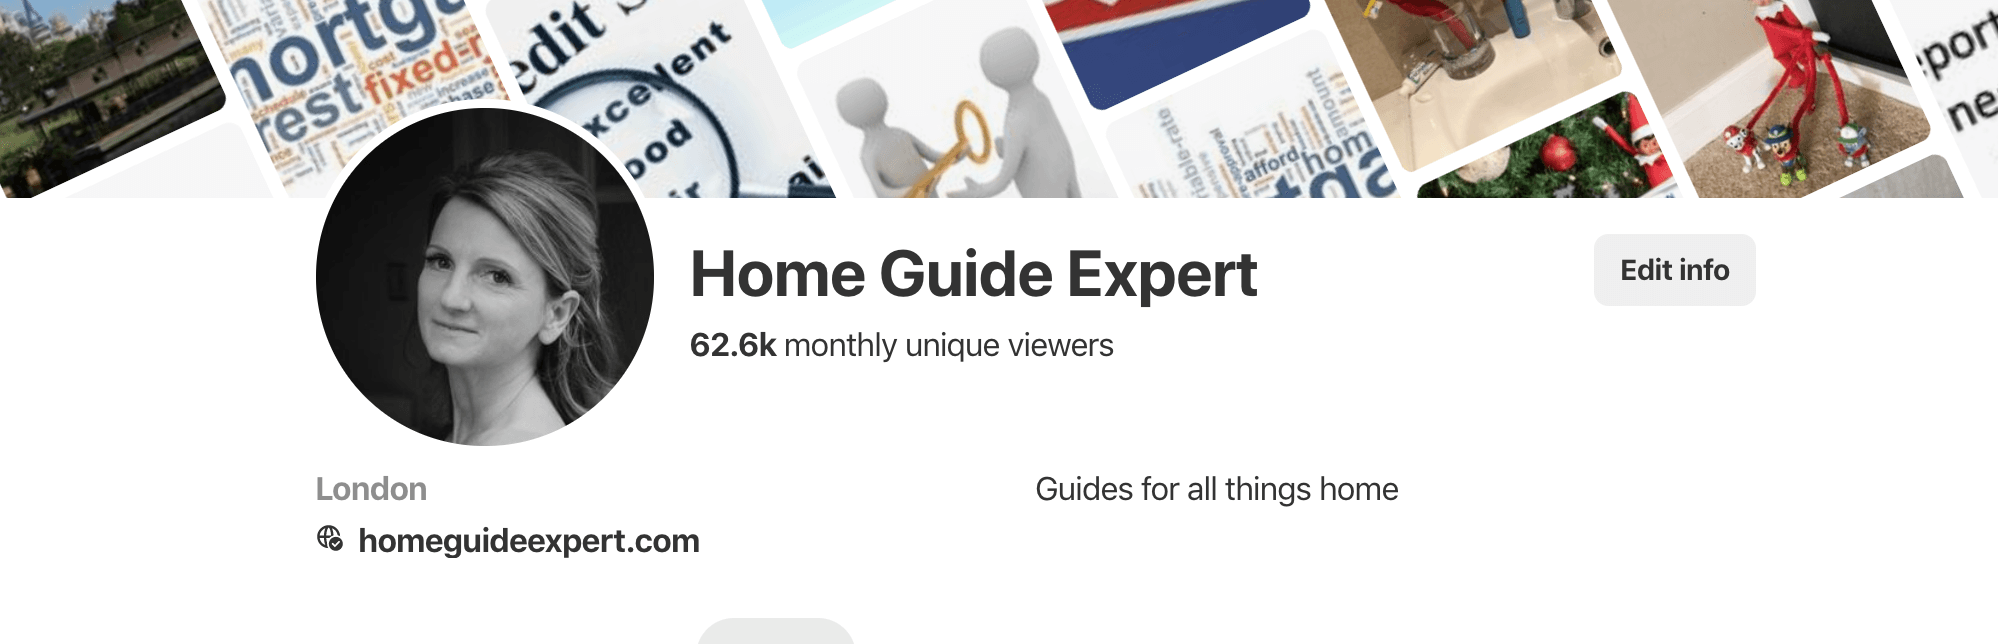 Image of Home Guide Expert Pinterest Board